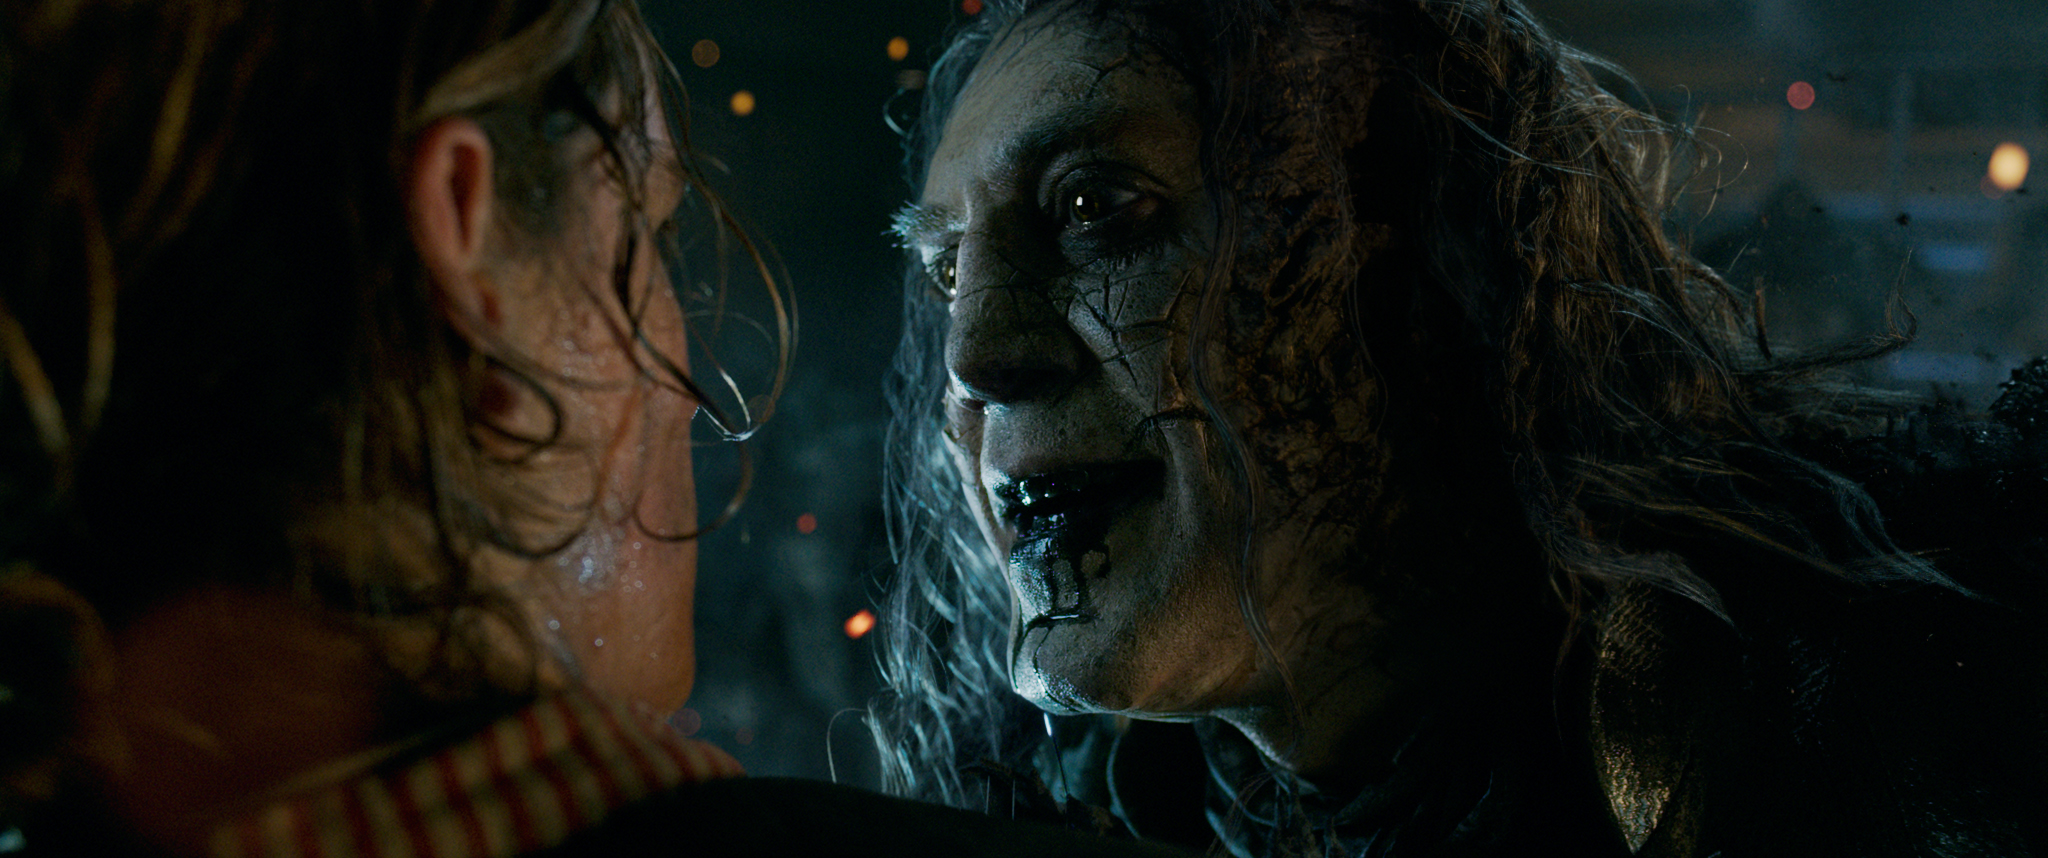 pirates-of-the-caribbean-dead-men-tell-no-tales-xlg-03outubro2016-1